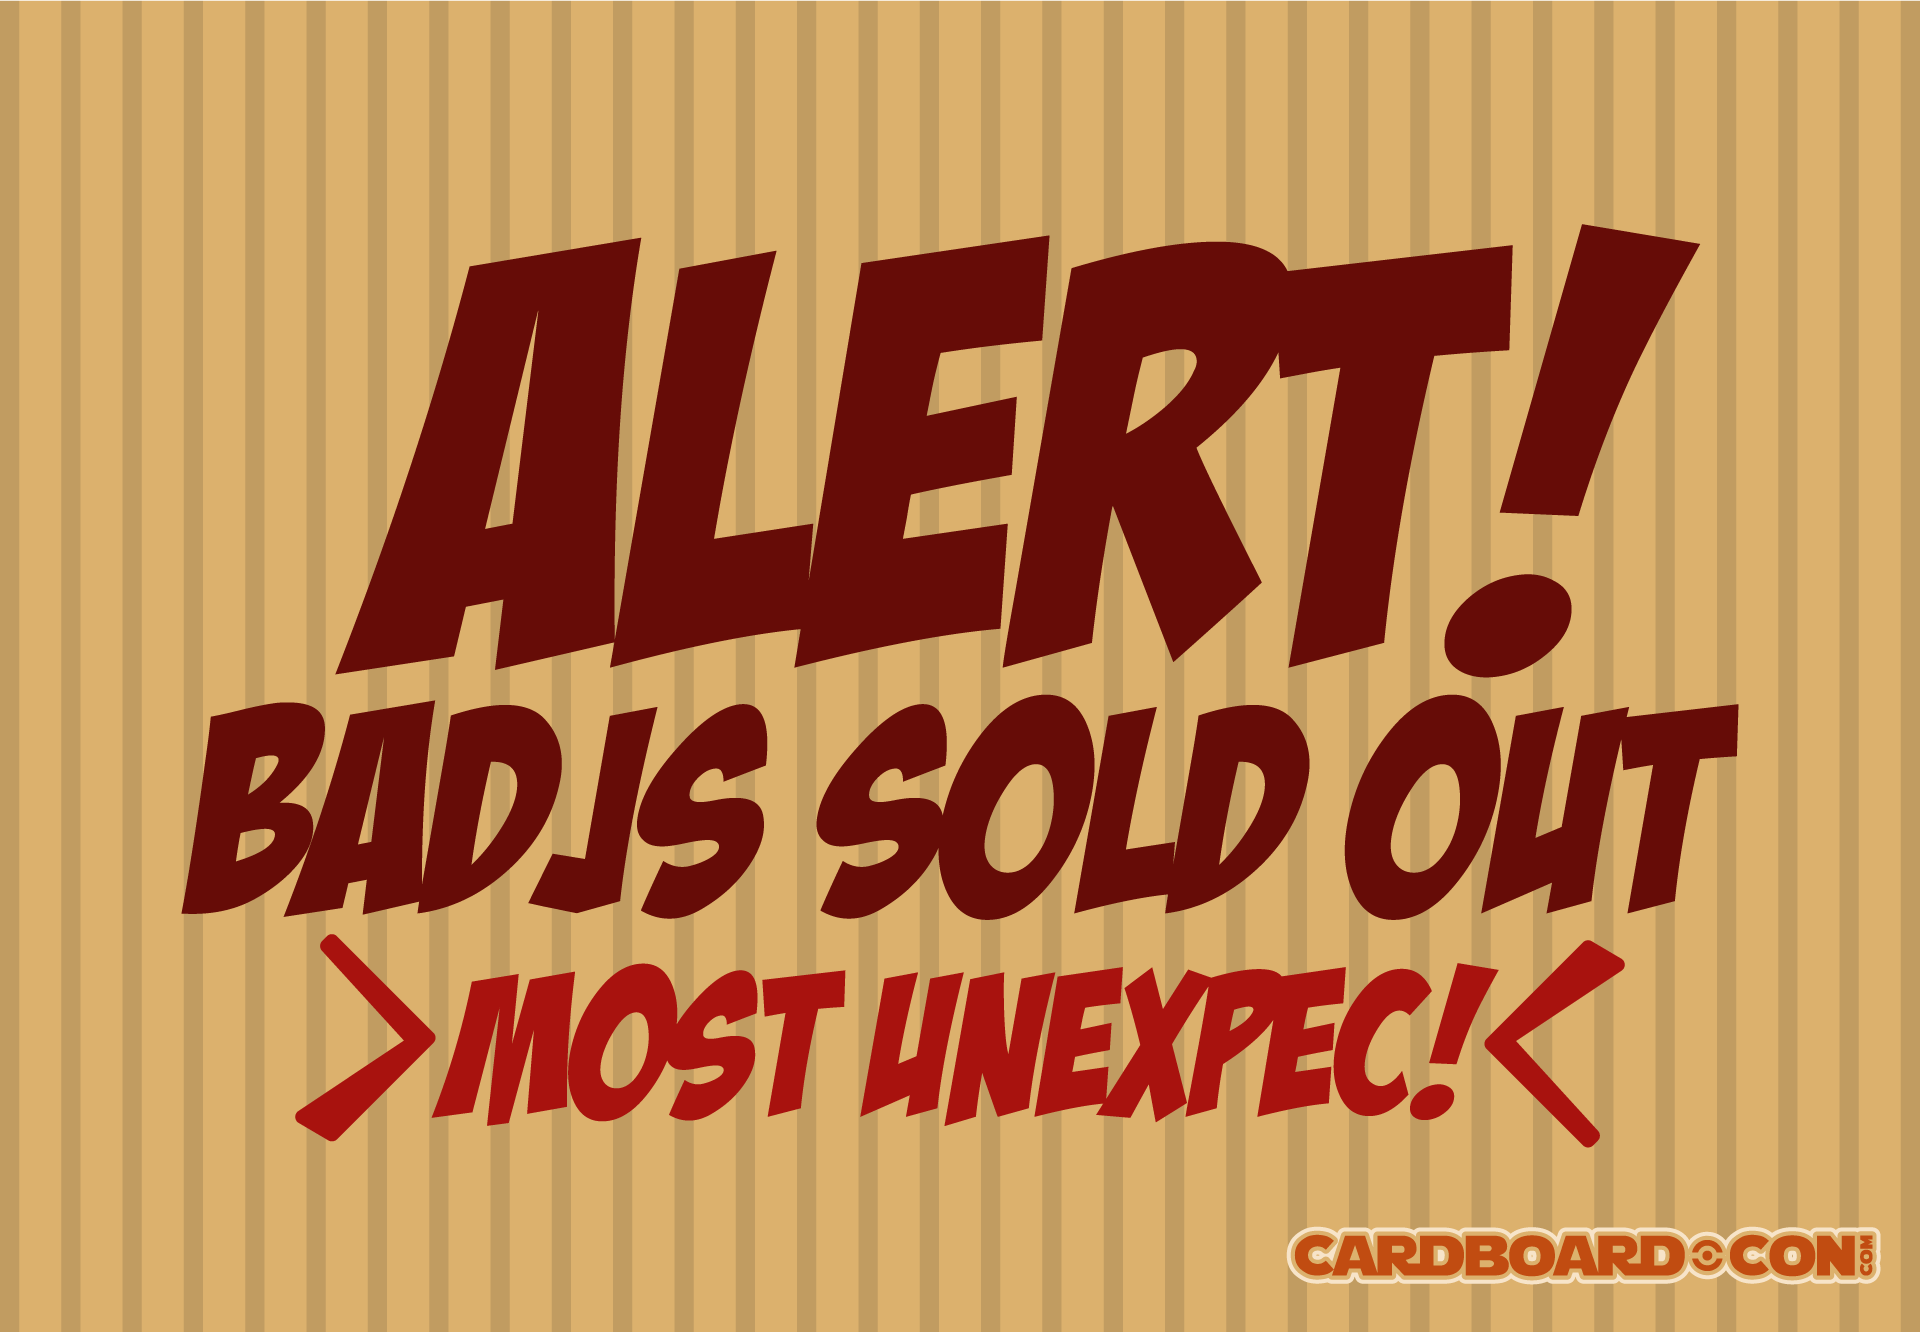 CardboardCon has probably SOLD OUT